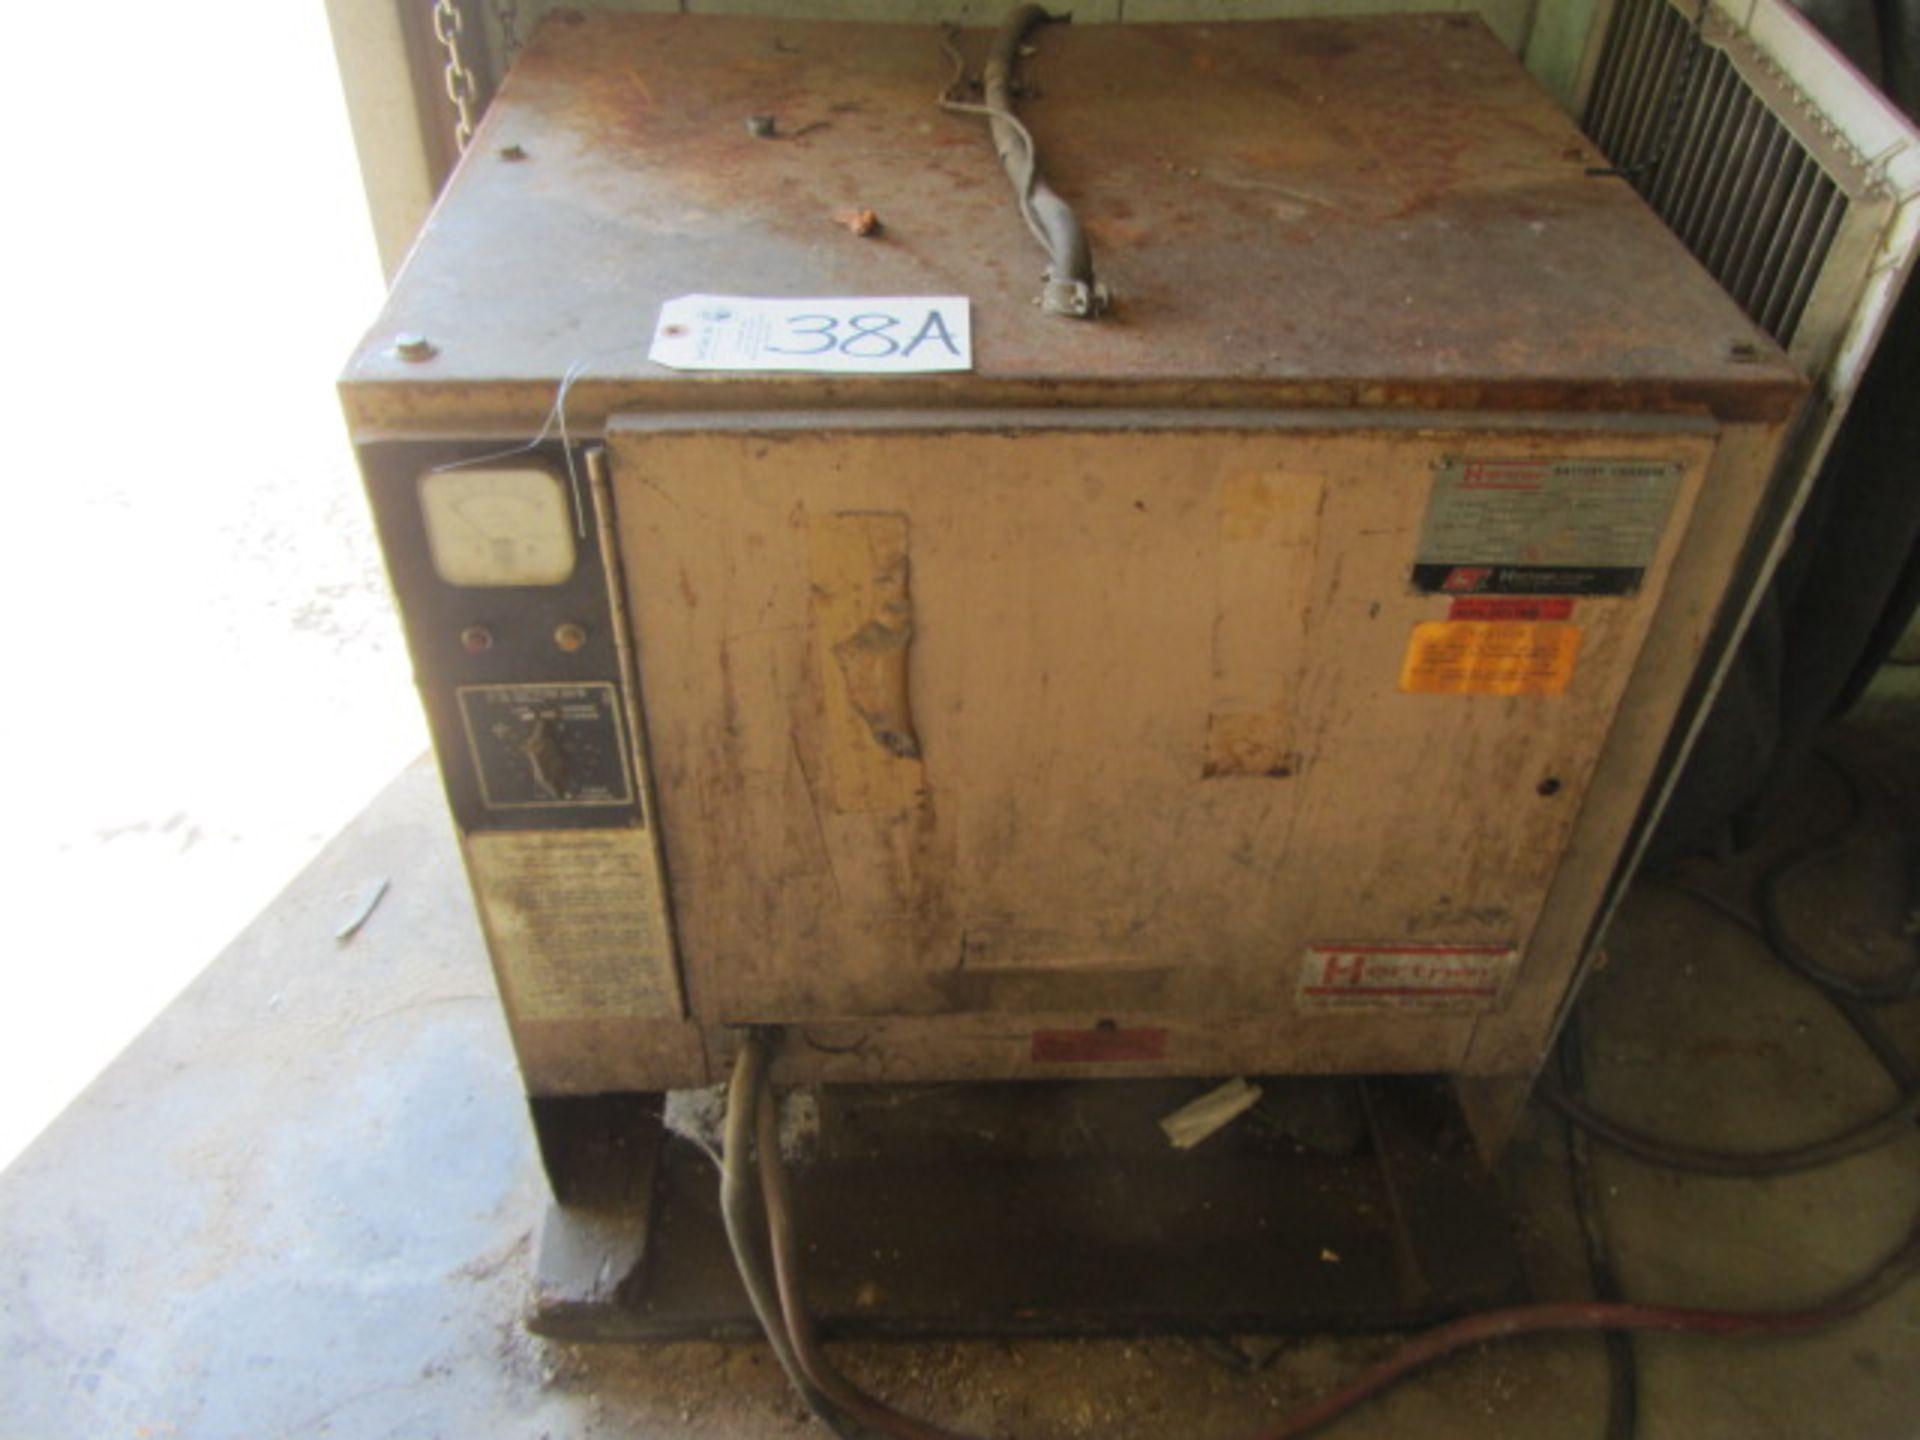 Lot 38A - Hertner Model 3TF24-865 24 Cell Battery Charger with 48 Volt, Max DC Amps 195, 31/16 AC Amps, sn: